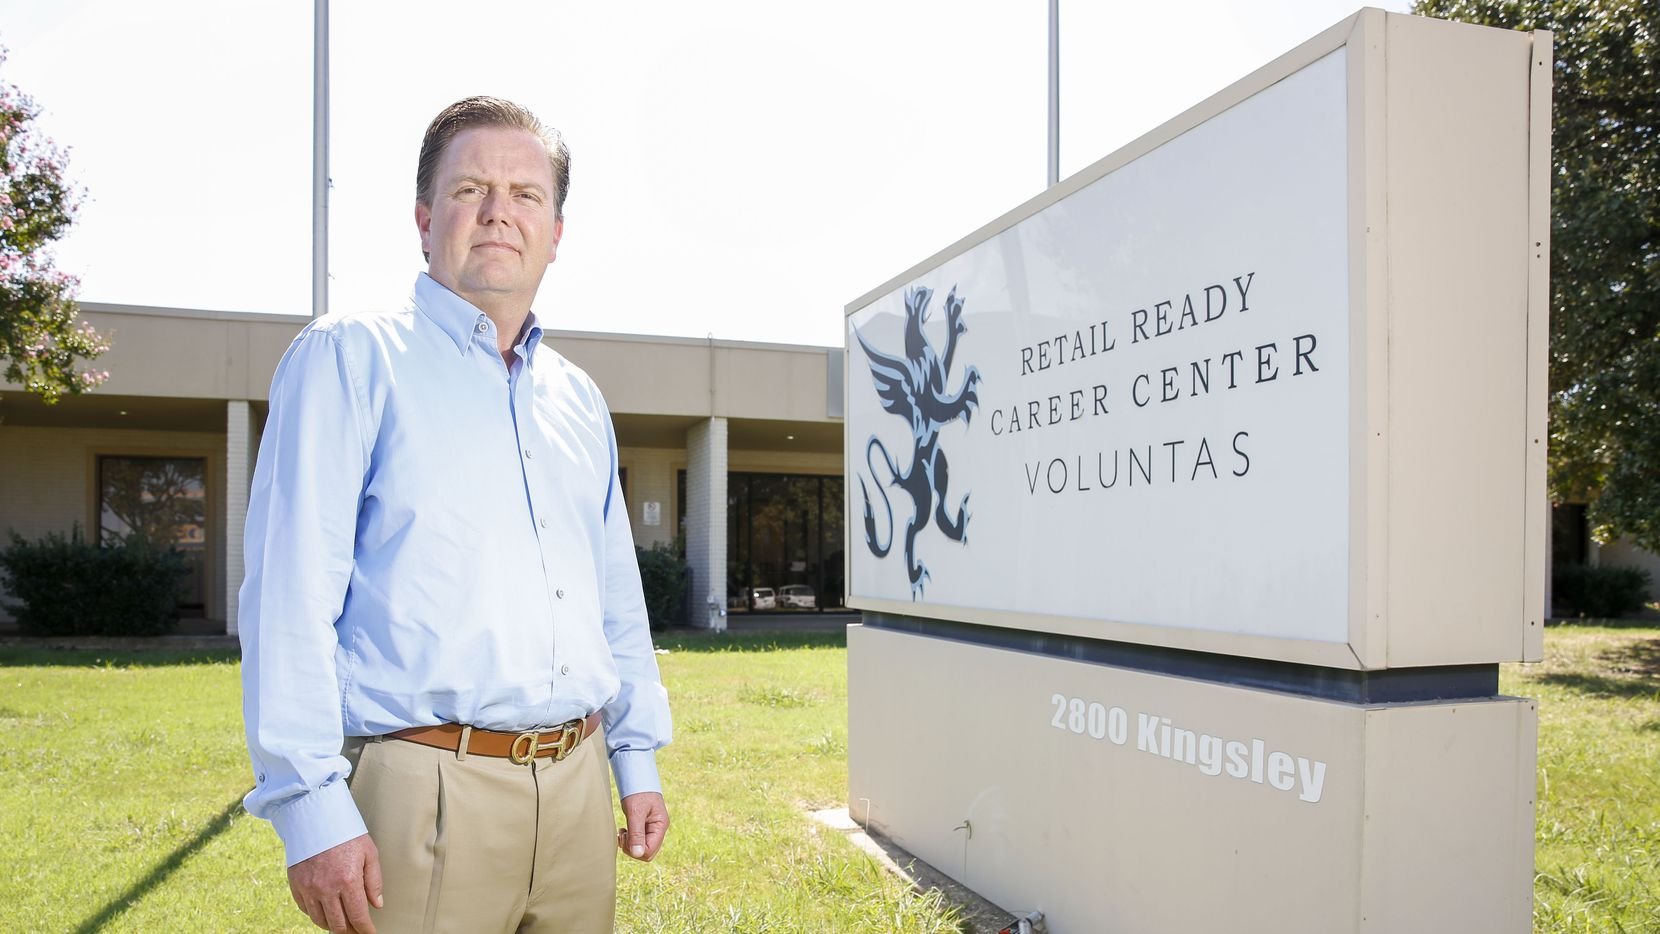 CEO and Founder Jon Davis of the Retail Ready Career Center stands outside the building that still houses his business in Garland, Texas Thursday September 26, 2019. He has been charged in federal court in Dallas with wire fraud, money laundering and identity theft in connection with G.I. Bill funding he received for his school. But he says the government has improperly turned a potential civil regulatory case into a criminal matter.